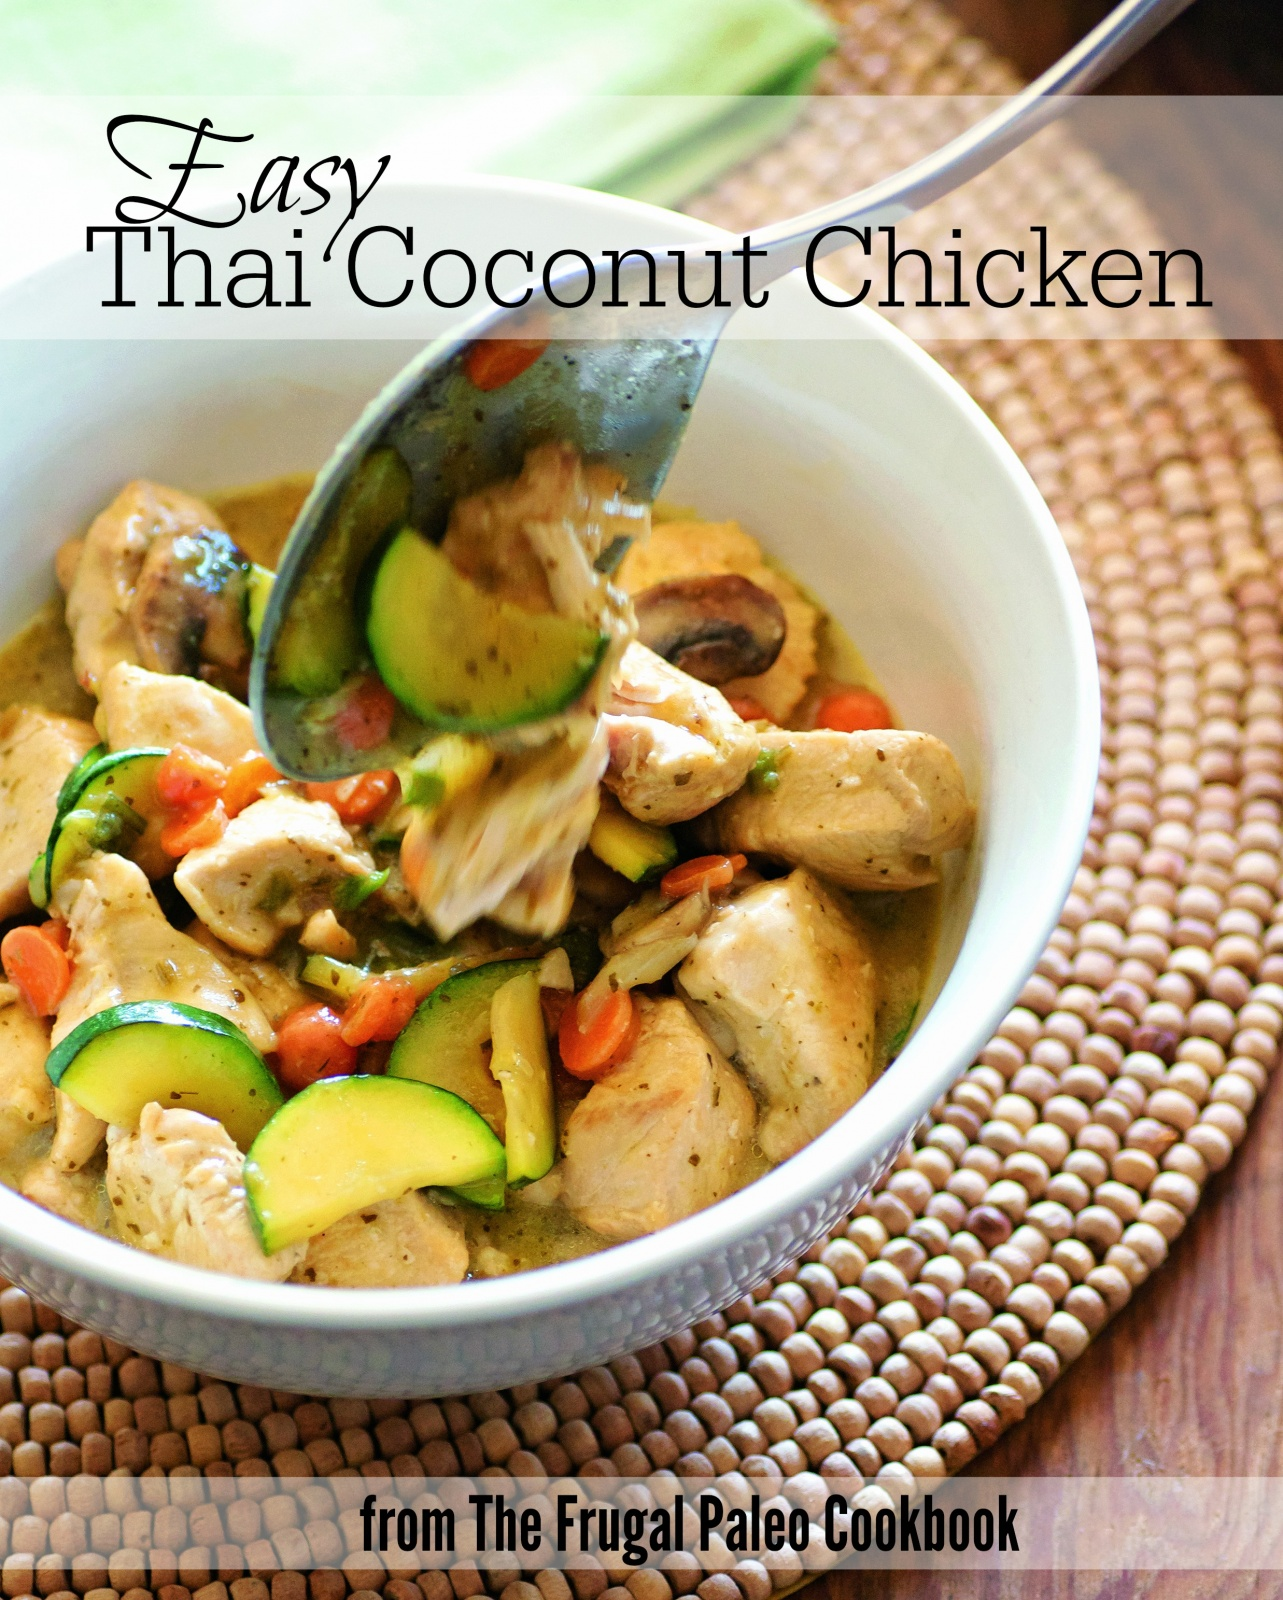 Easy Thai Coconut Chicken from The Frugal Paleo Cookbook